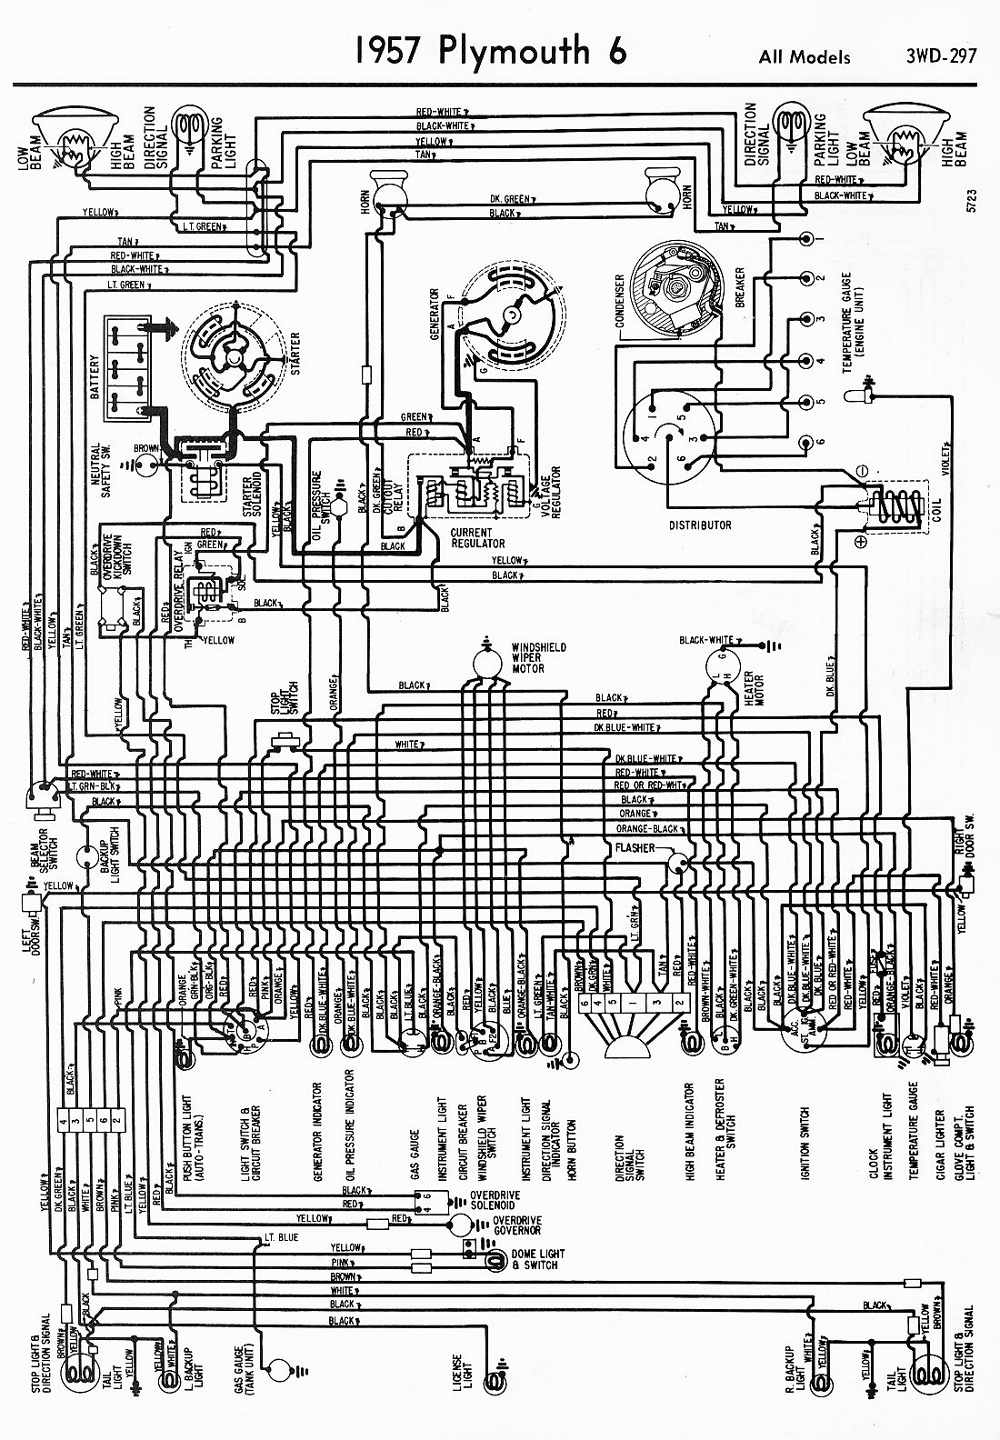 1968 Plymouth Wiring Diagram Satellite Diagrams Blog About Rh Clares Driving Co Uk 1972 Fury 3